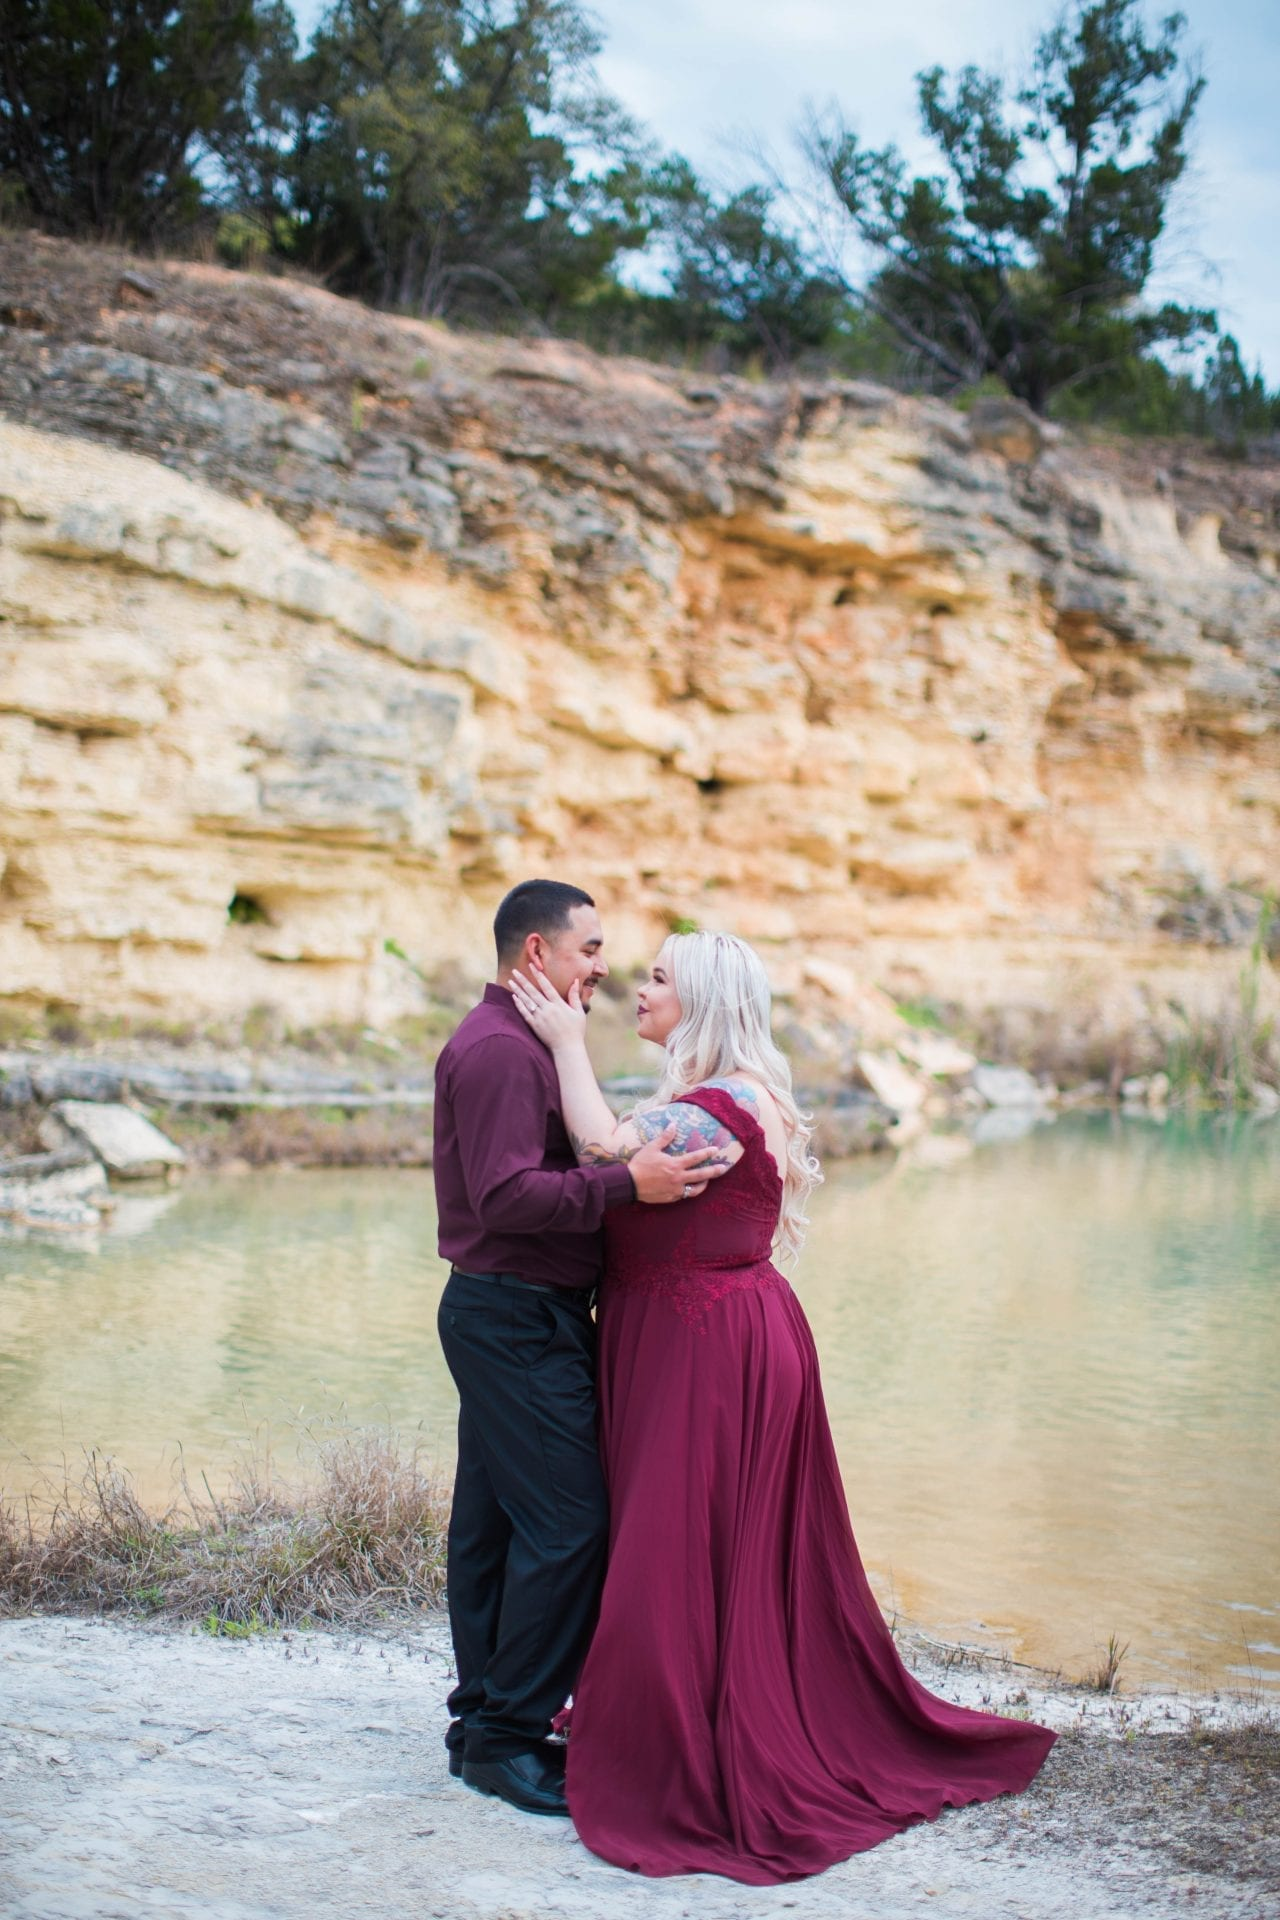 Katie and Gabe engagement session Canyon Lake dam gorge on the island yellow wall looking at each other